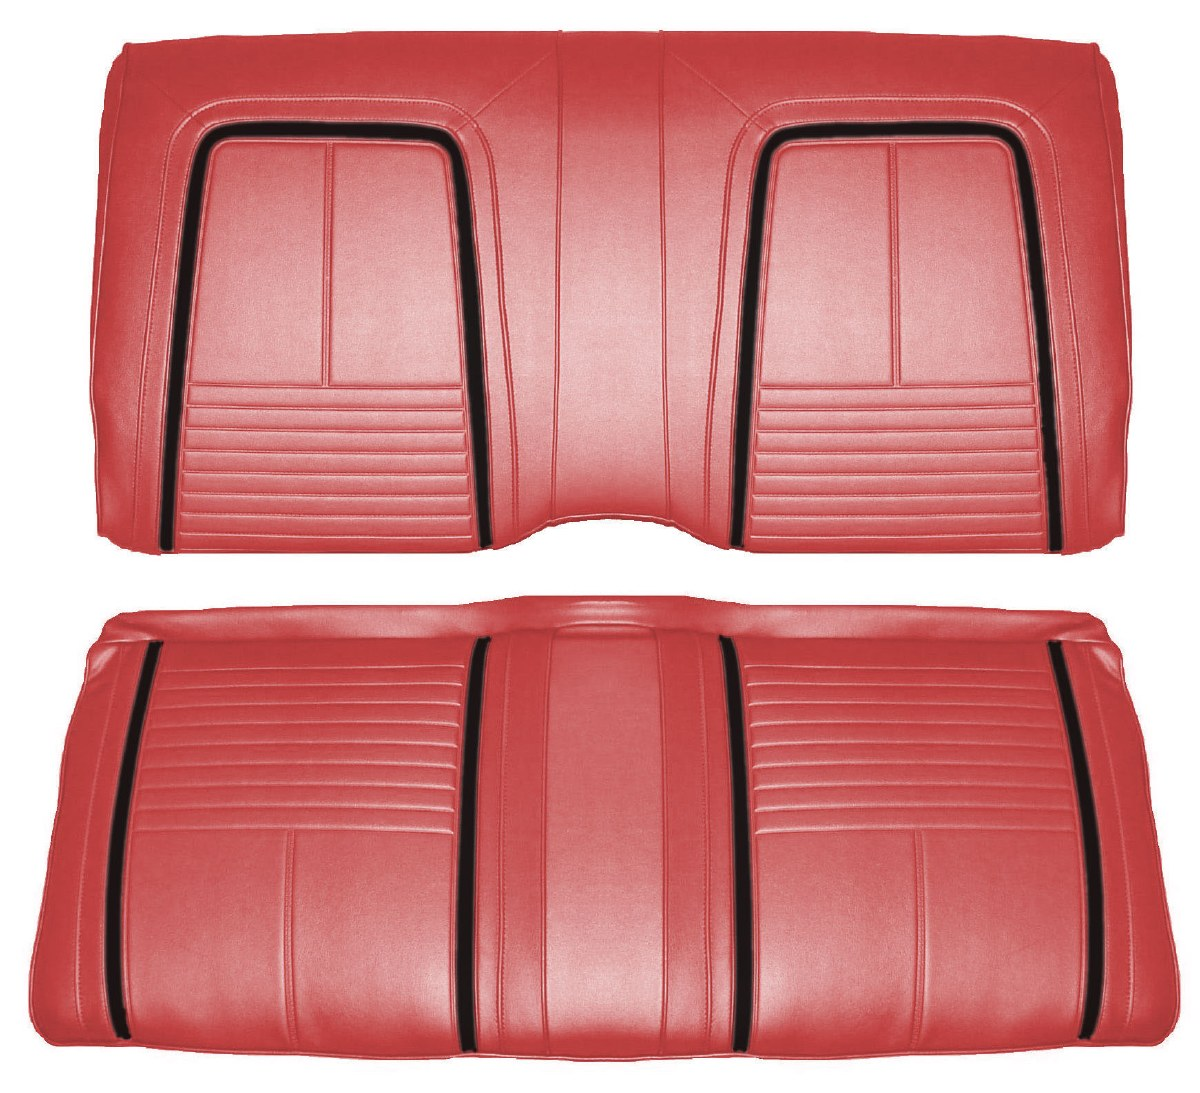 Fine 1967 Camaro Deluxe Interior Fold Down Rear Seat Covers Red Onthecornerstone Fun Painted Chair Ideas Images Onthecornerstoneorg